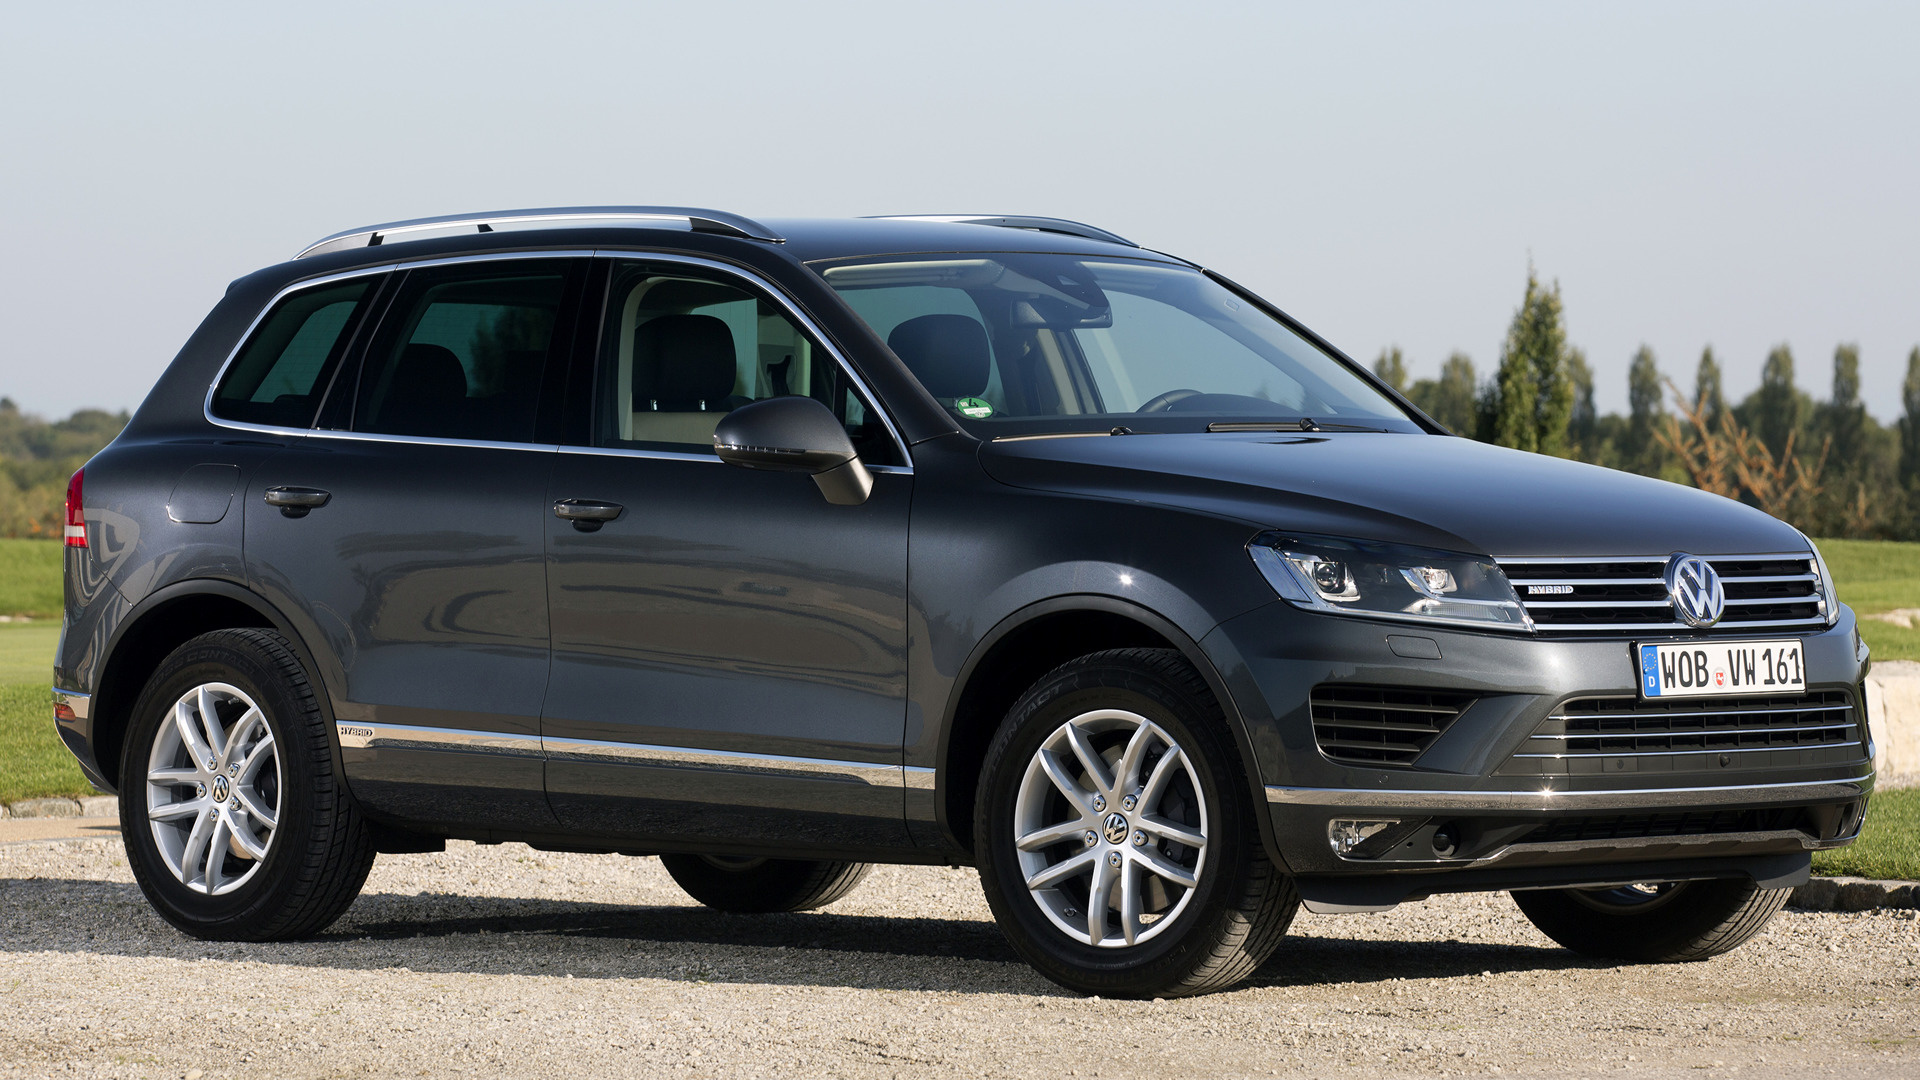 Volkswagen Touareg Hybrid 2014 Wallpapers And Hd Images